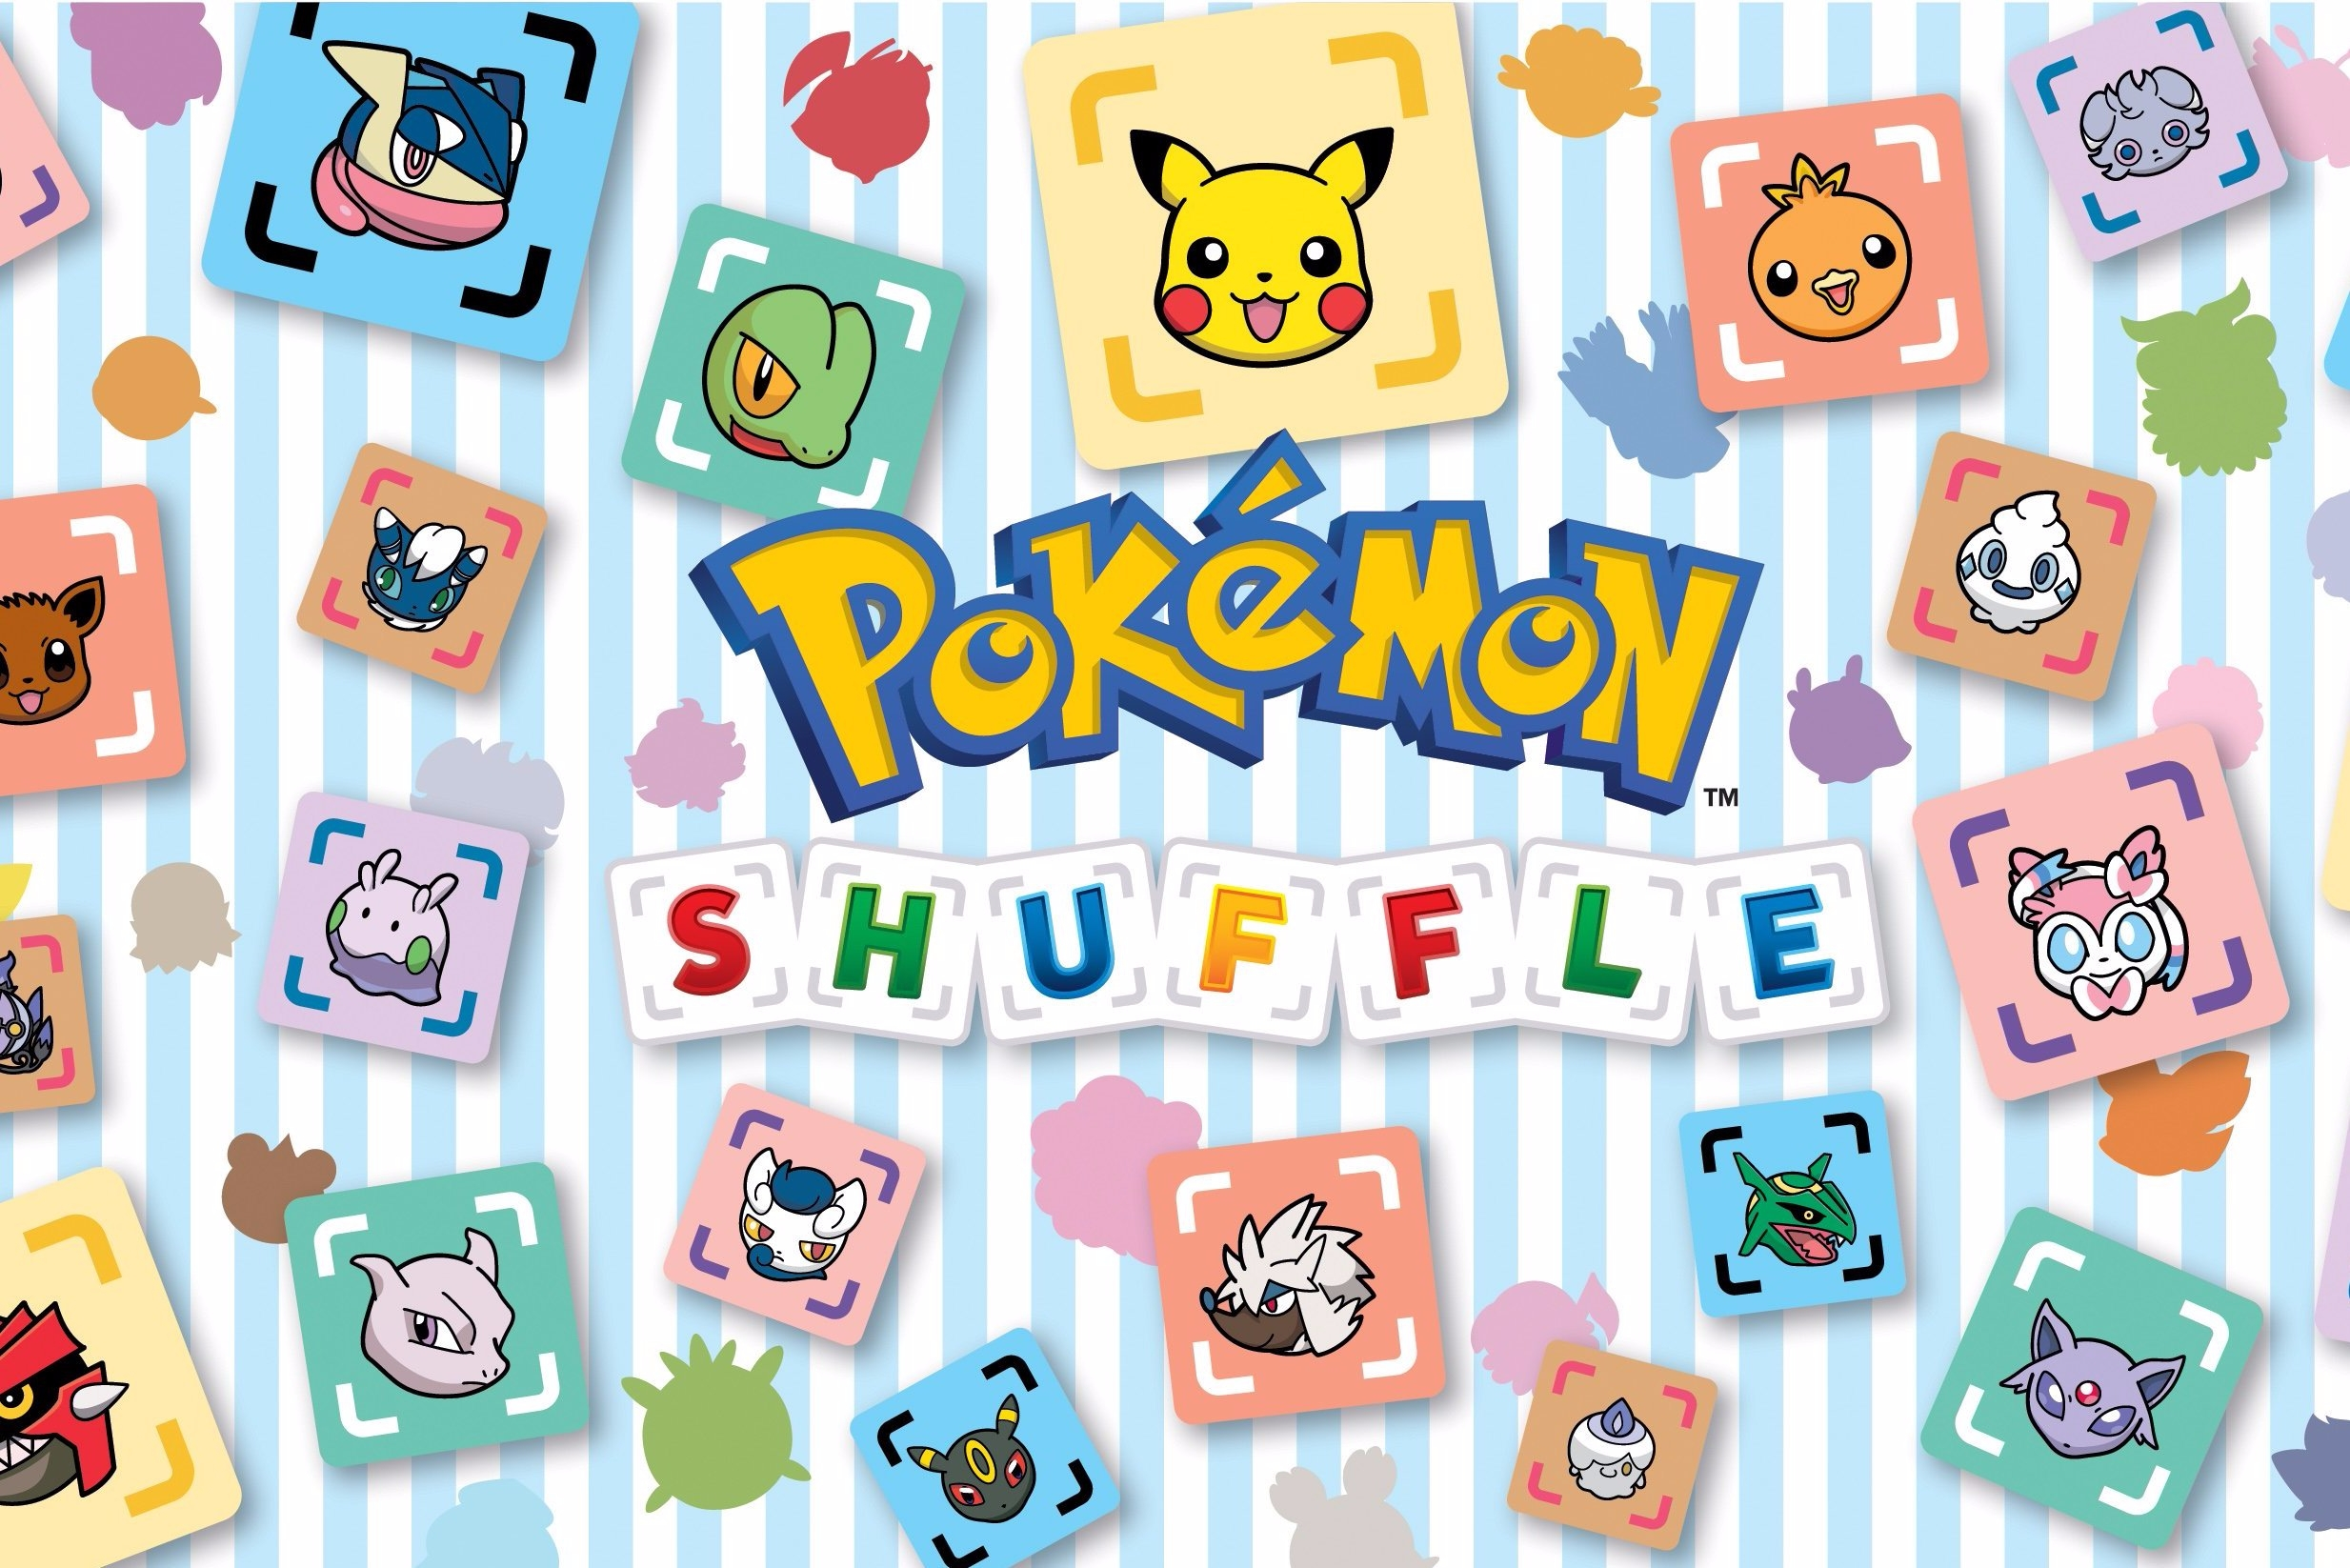 Modojo | Get Ready For New Pokemon Shuffle Content